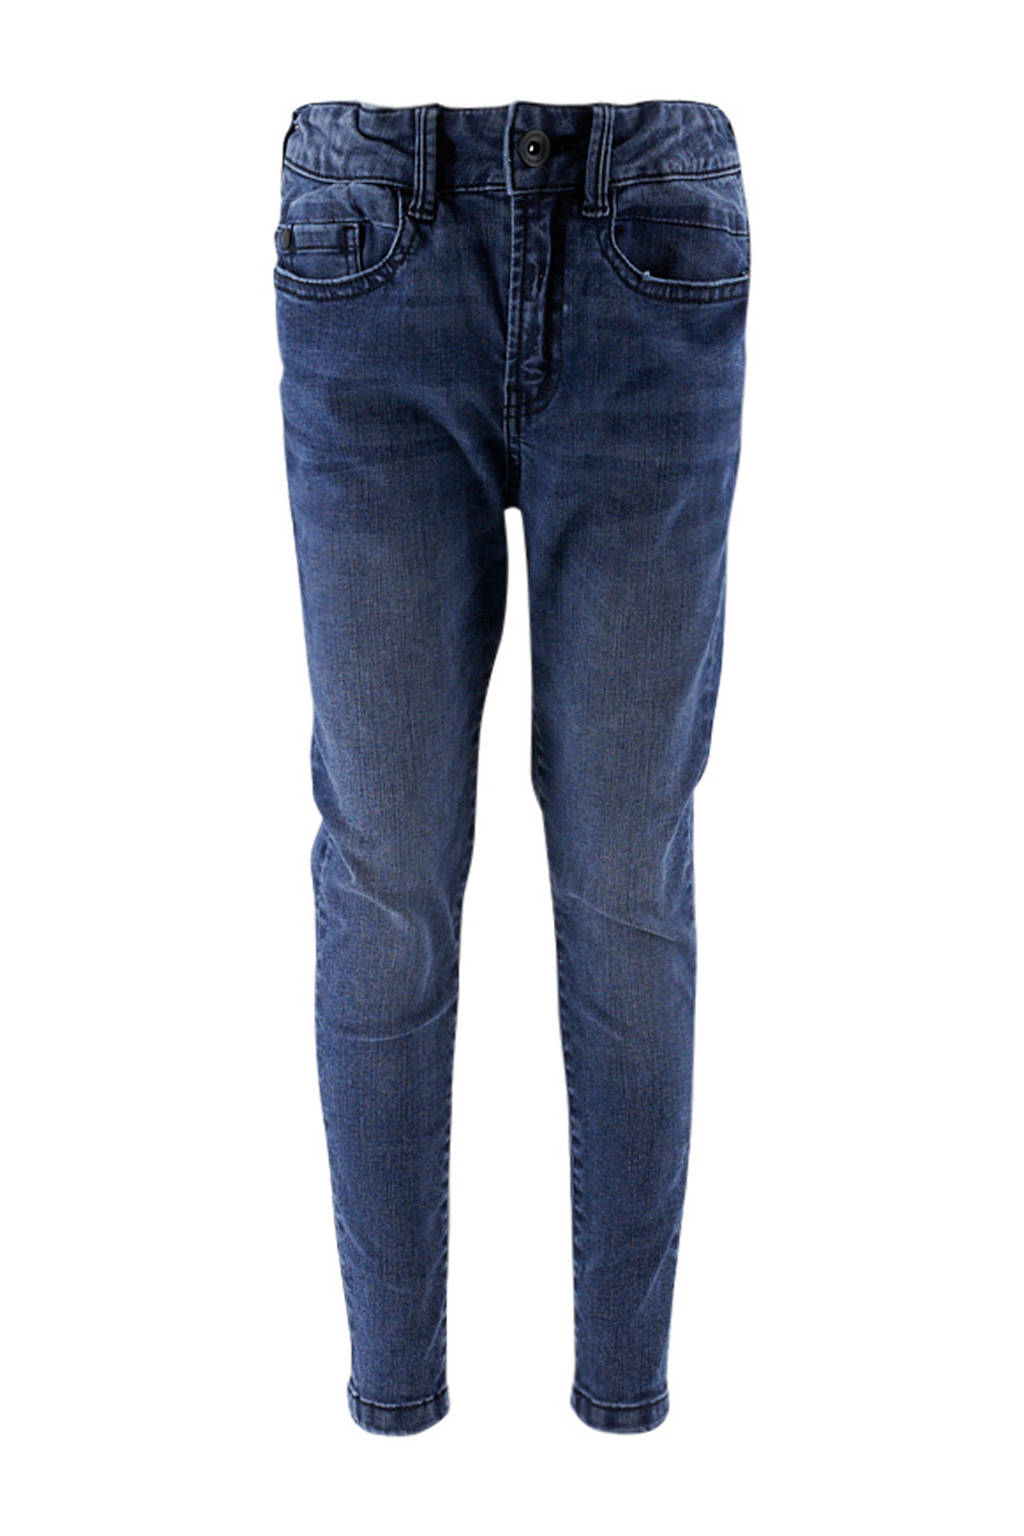 KIDDO slim fit jeans dark denim, Dark denim ligth washing